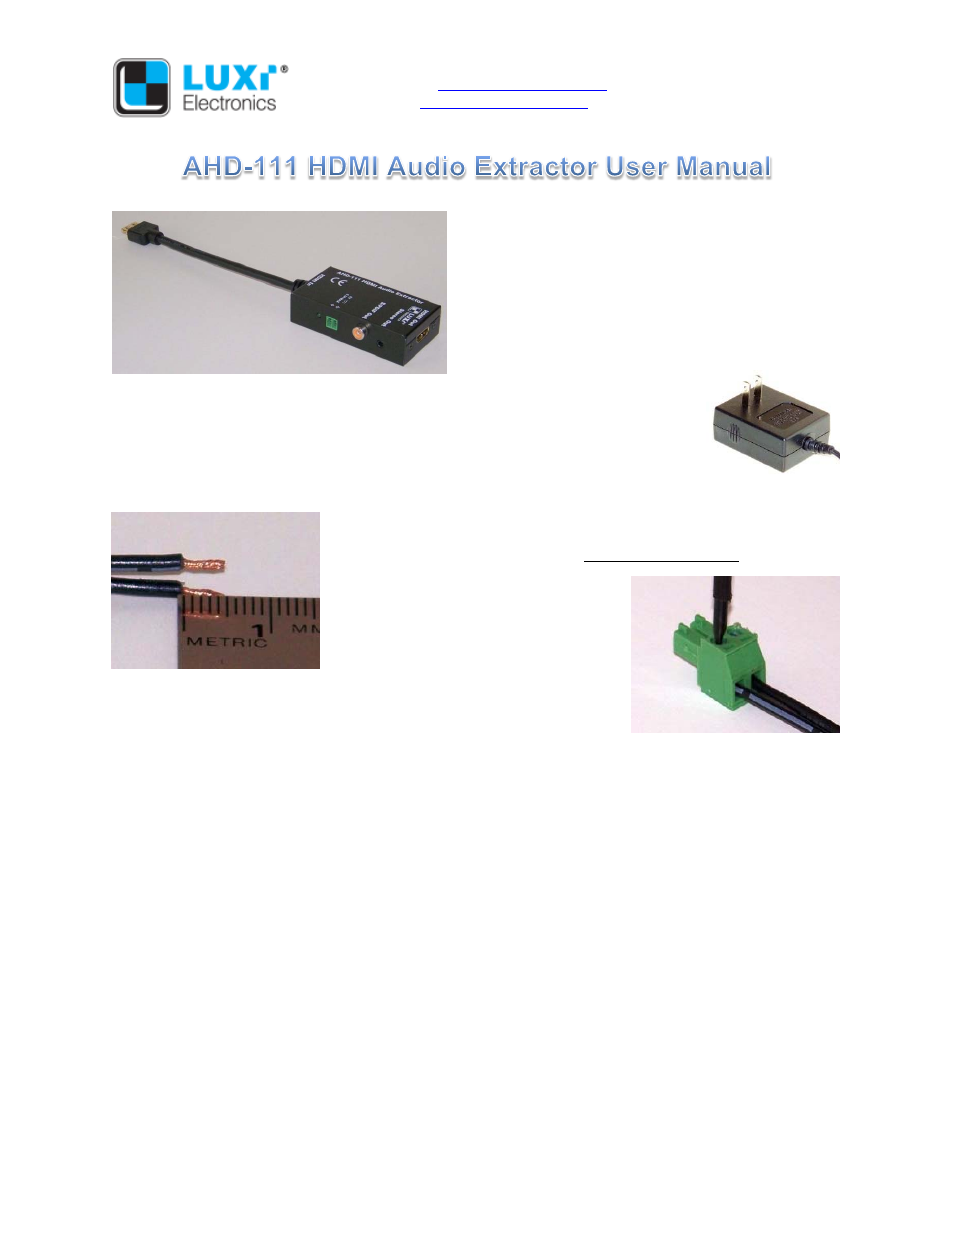 Luxi Electronics Ahd 111 User Manual 2 Pages Do All Hdmi Wiring Schematic